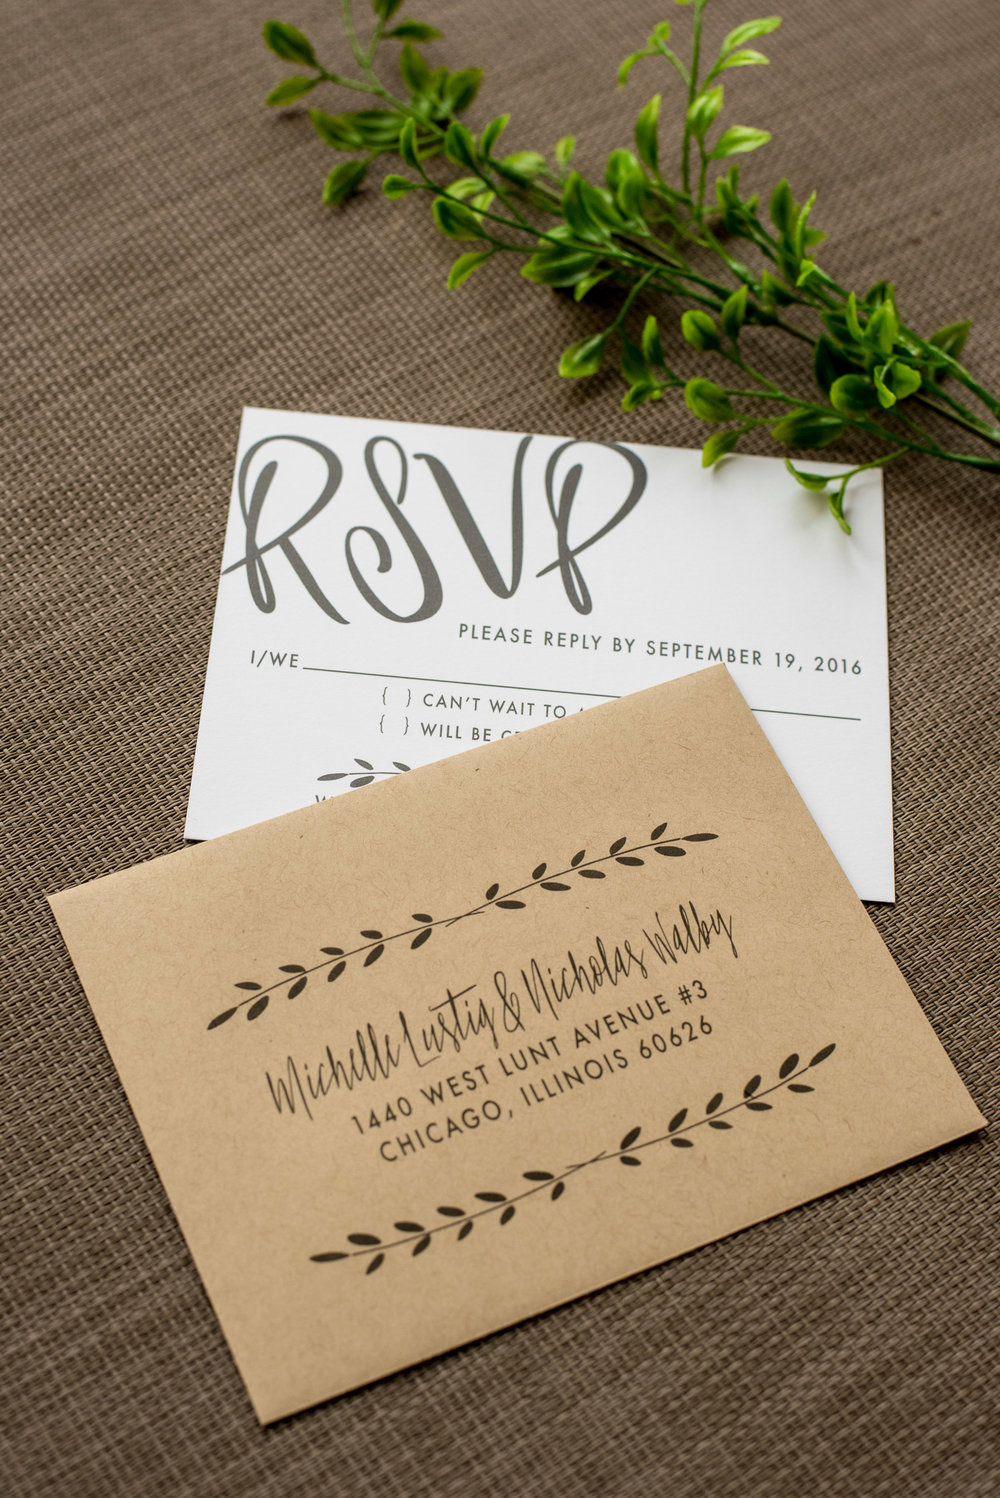 Industrial Chic Wedding Invitation by Ashley Parker Creative on Kraft Paper with Charcoal and Fern Accents, a Monogram Tag, and Printed Bellyband.  RSVP Card and Envelope.